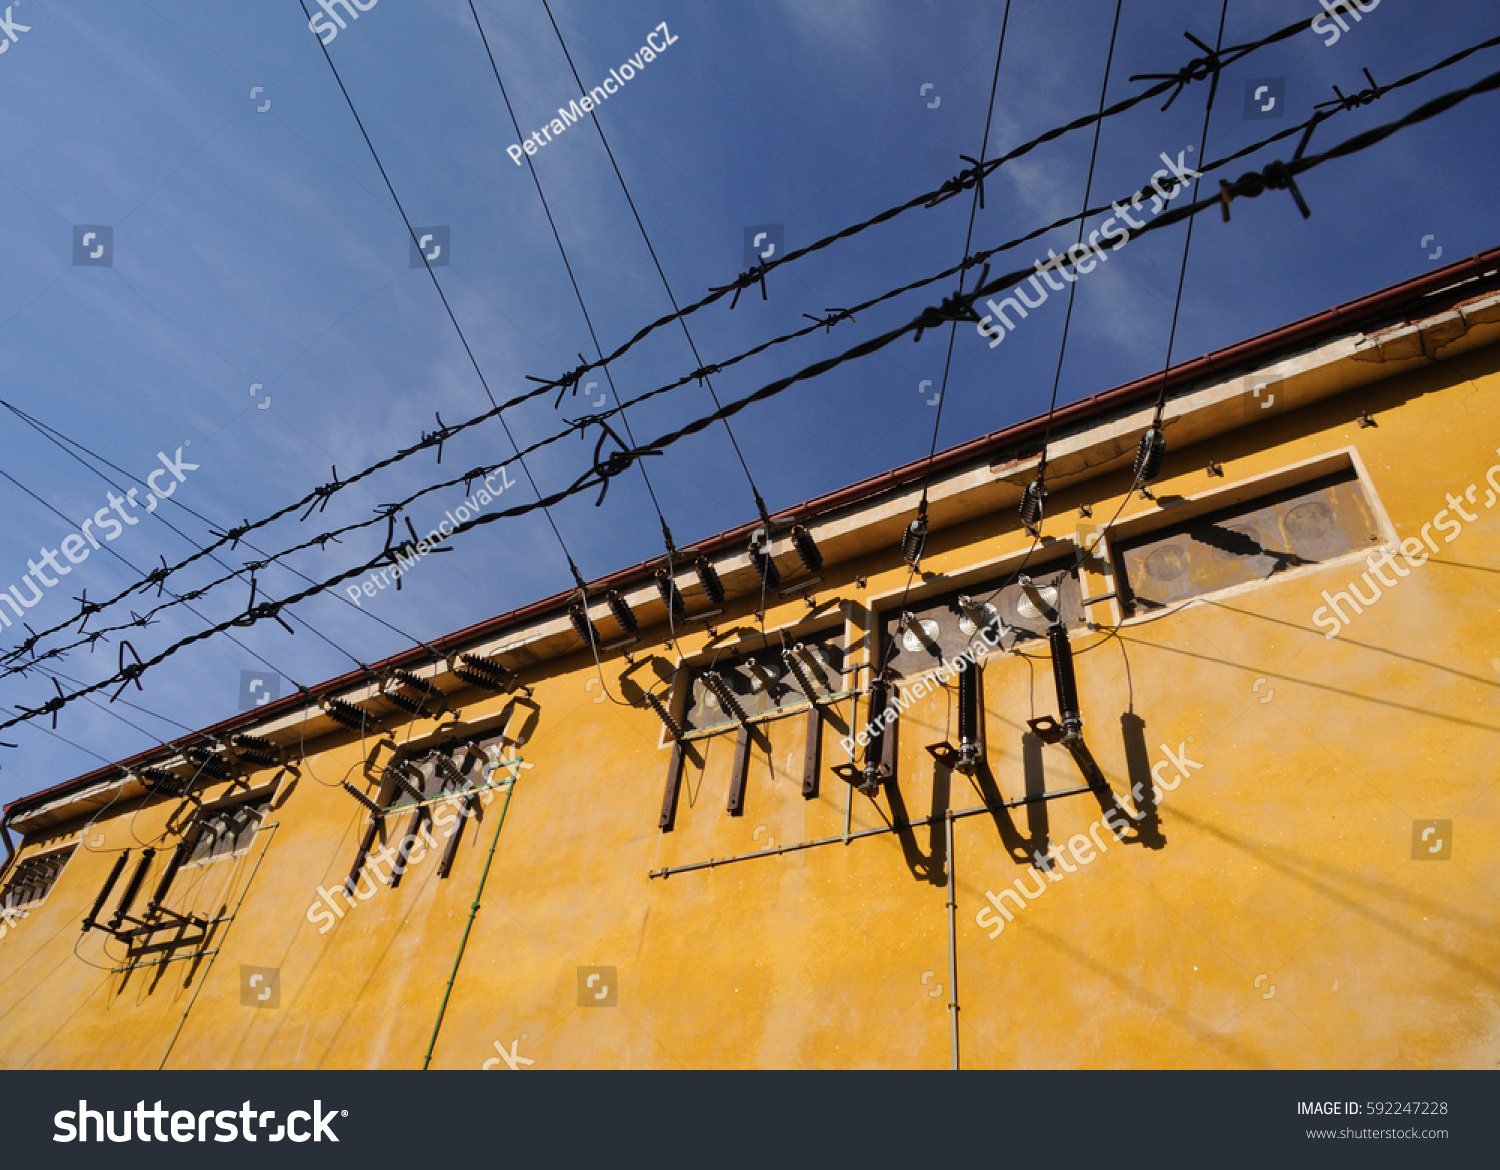 hight resolution of old transformer building with transformer points in sunny day clean blue sky background barbed